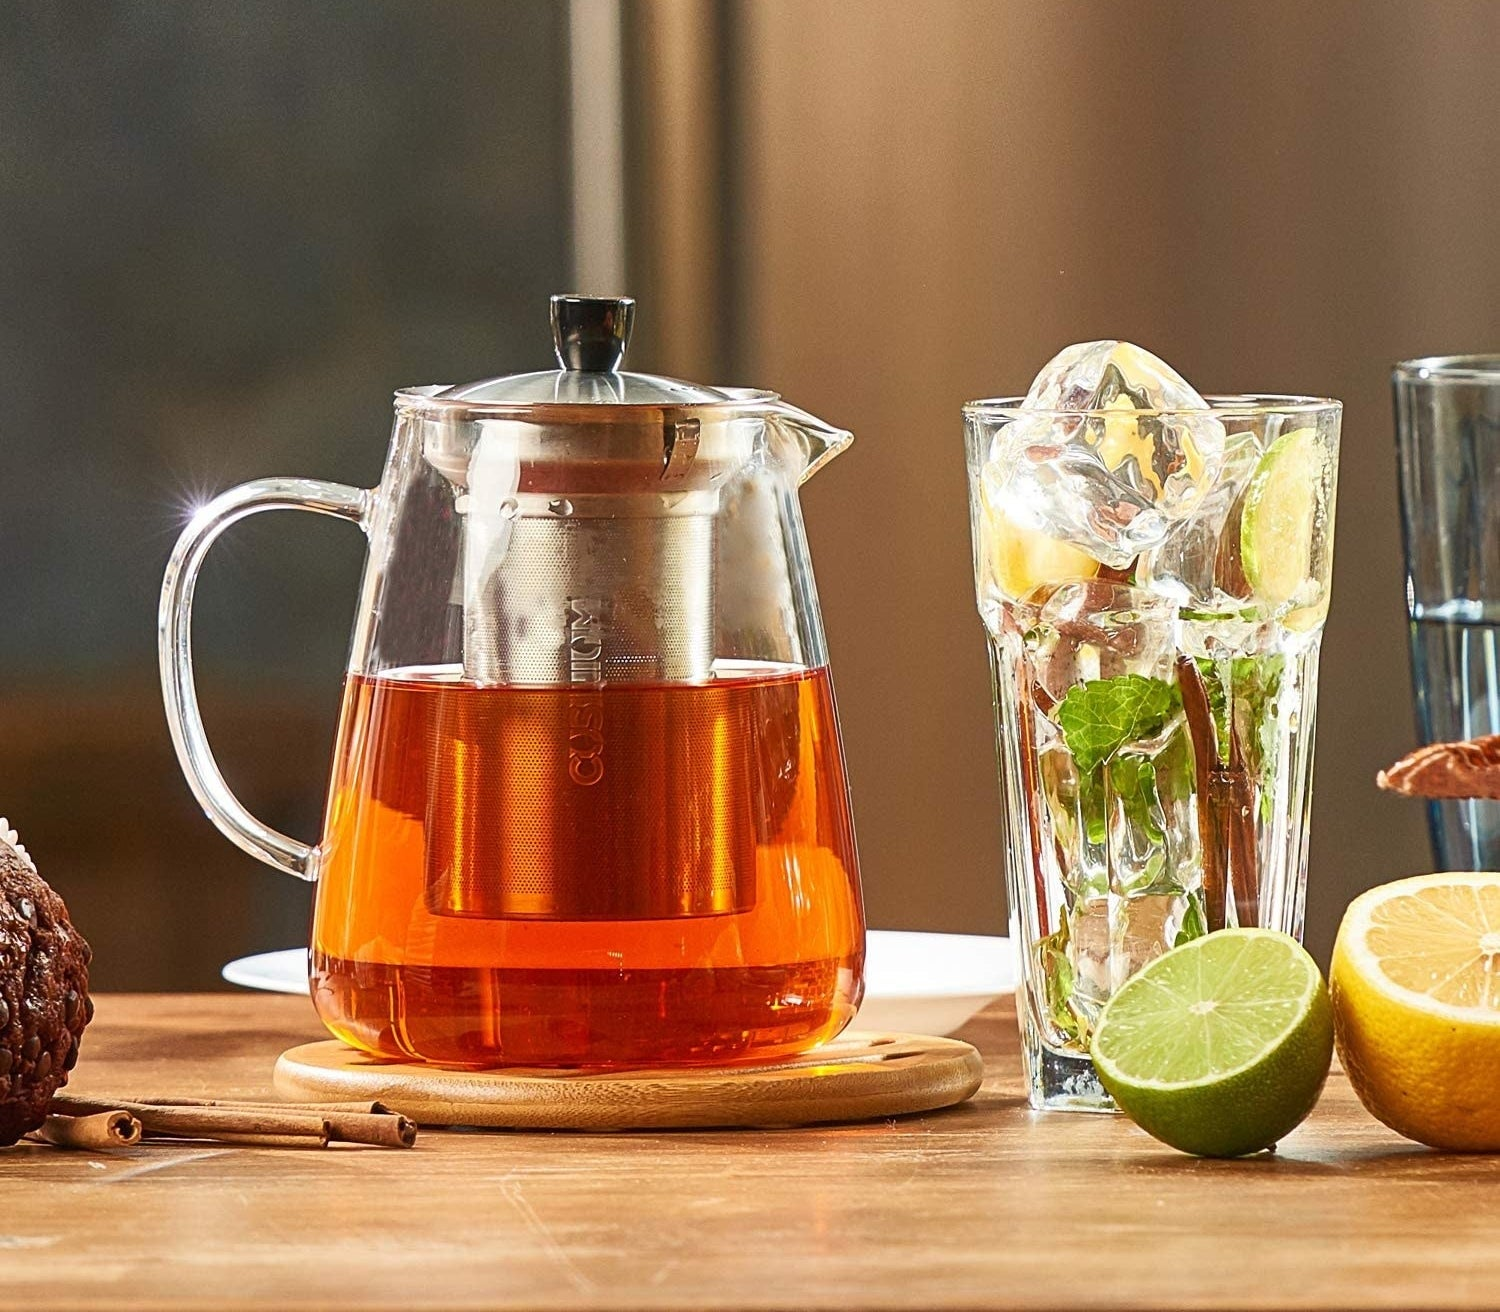 A glass teapot full of tea next to a glass of ice